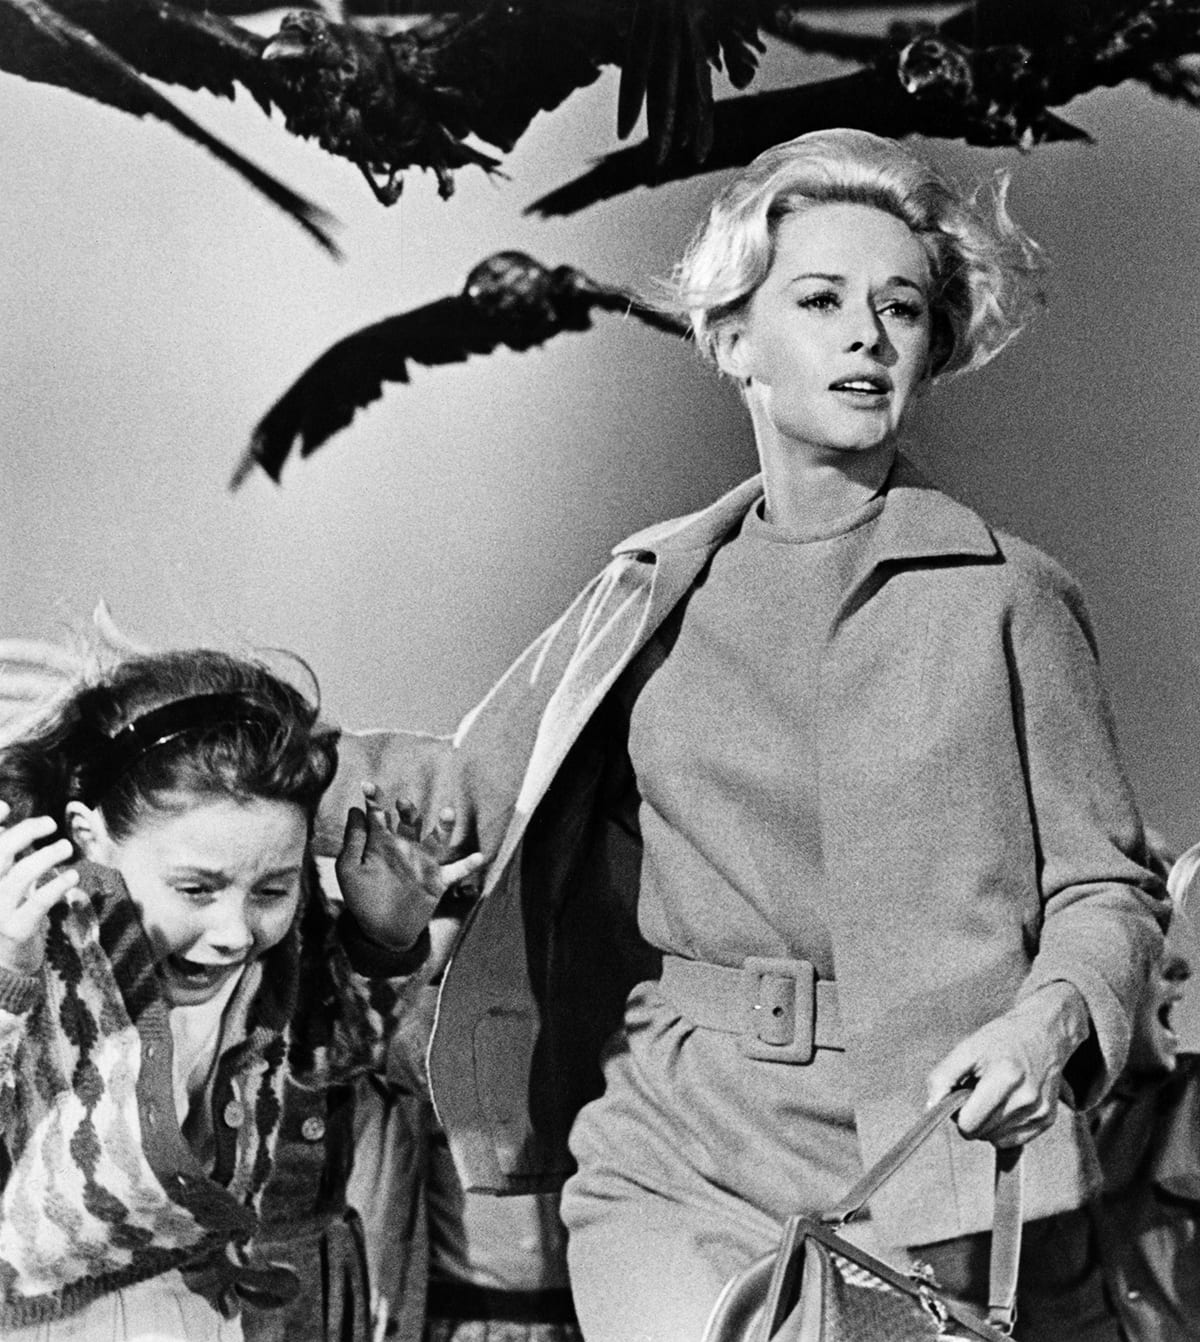 A scene from the 1963 Hollywood horror classic, The Birds. The movie drew inspiration from a real-life situation in Monterey Bay, California where seabirds became disoriented and began slamming into homes after ingesting toxic algae. (Photo Courtesy of Universal Studios Licensing LLC)